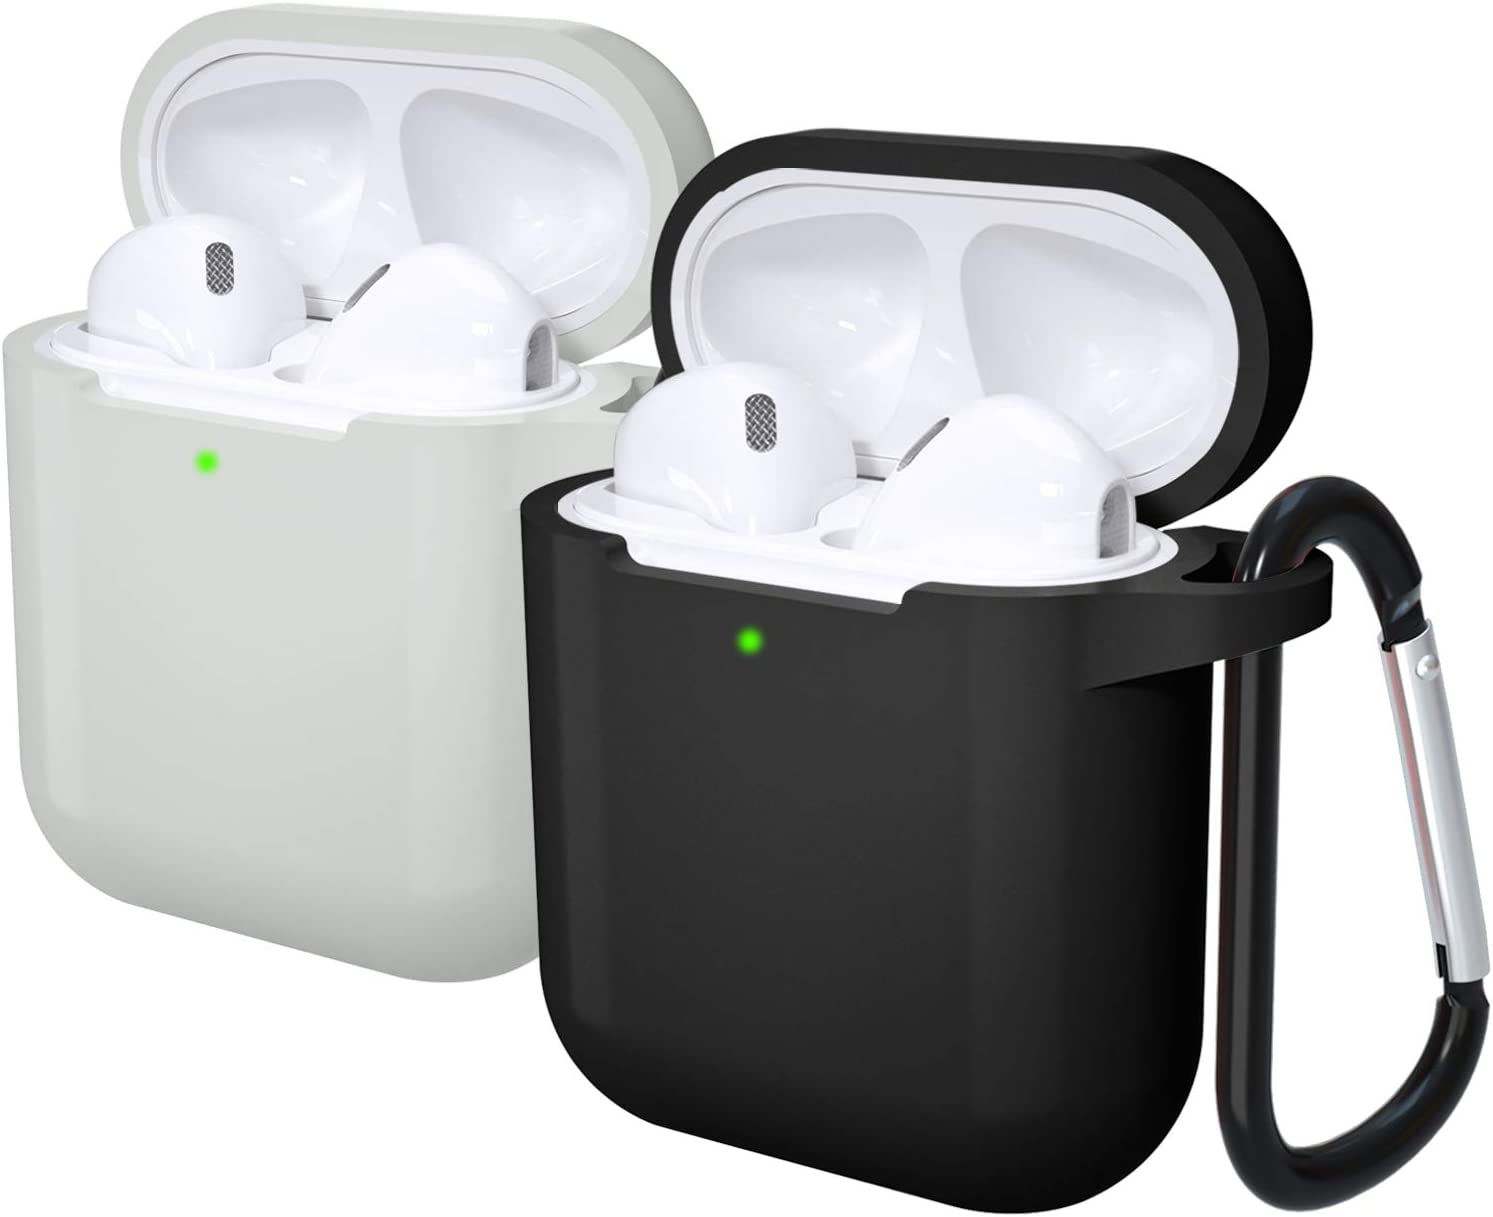 Laffav Airpods Case, Soft Silicone Protective Shockproof Wireless Charging Airpods Earbuds Case Cover Skin with Keychain kit Set for Apple AirPods 1 & 2 (Front LED Visible), 2 Pack, Black, Gray